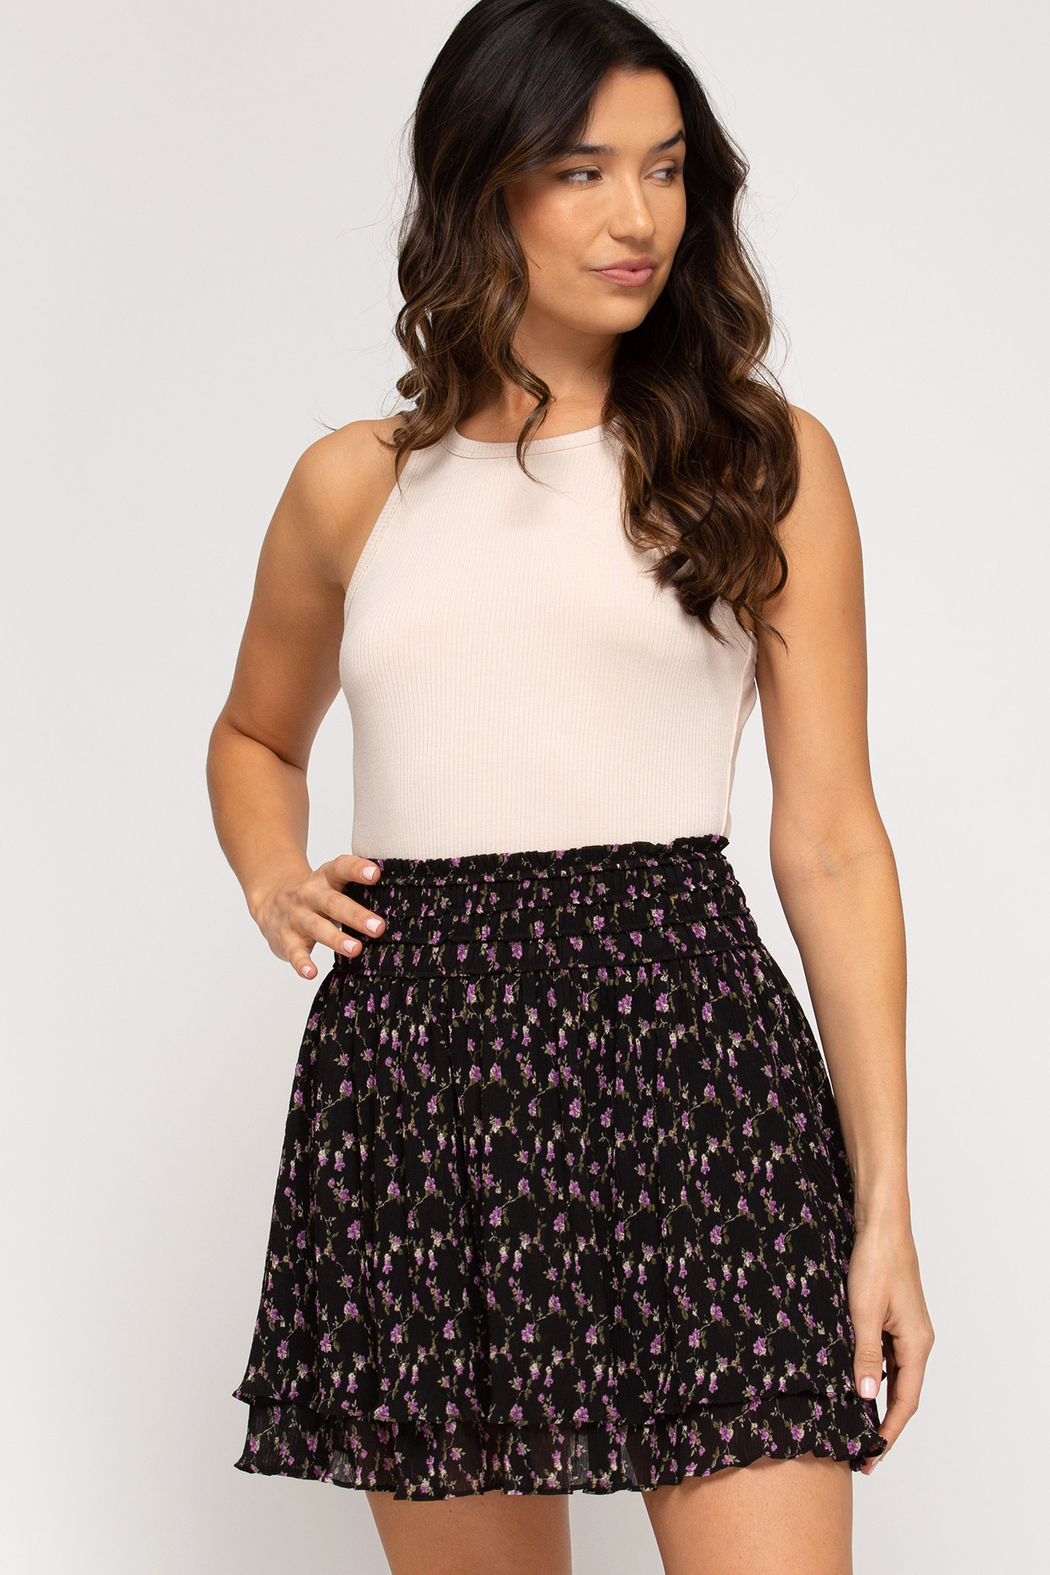 She and Sky Floral Skirt with Waist Smocking - Main Image